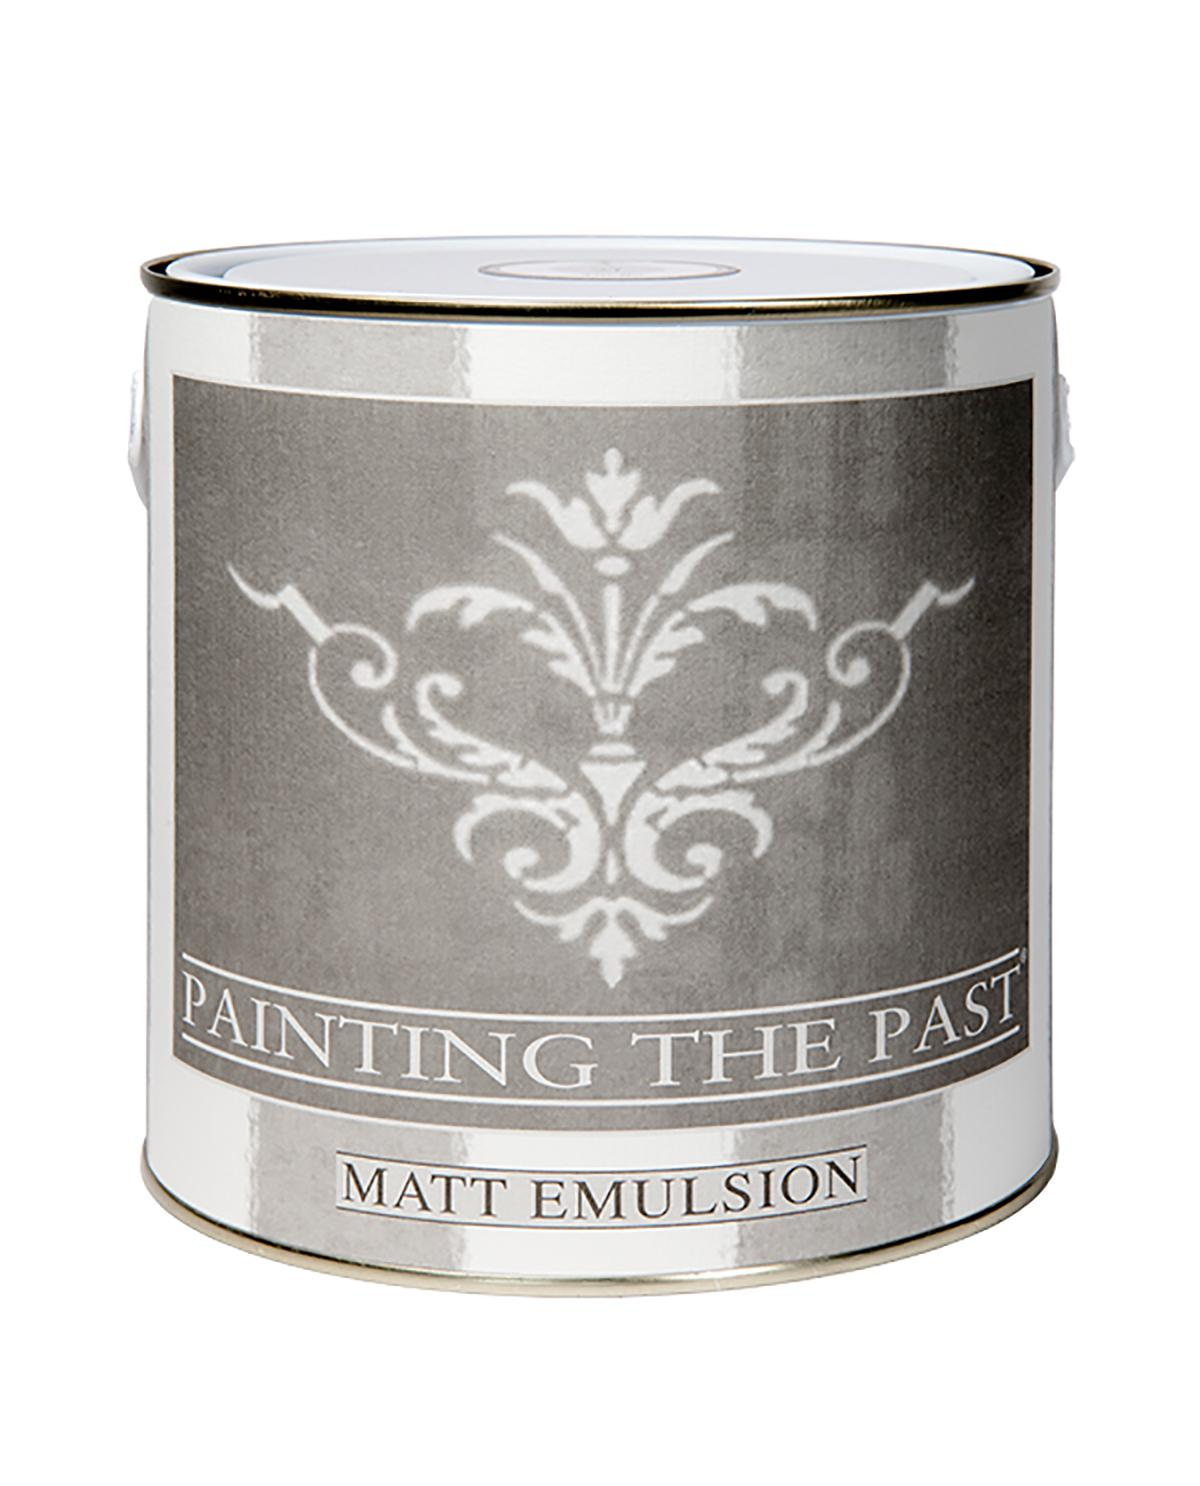 BC CosyLiving - Painting the Past Matt Emulsion